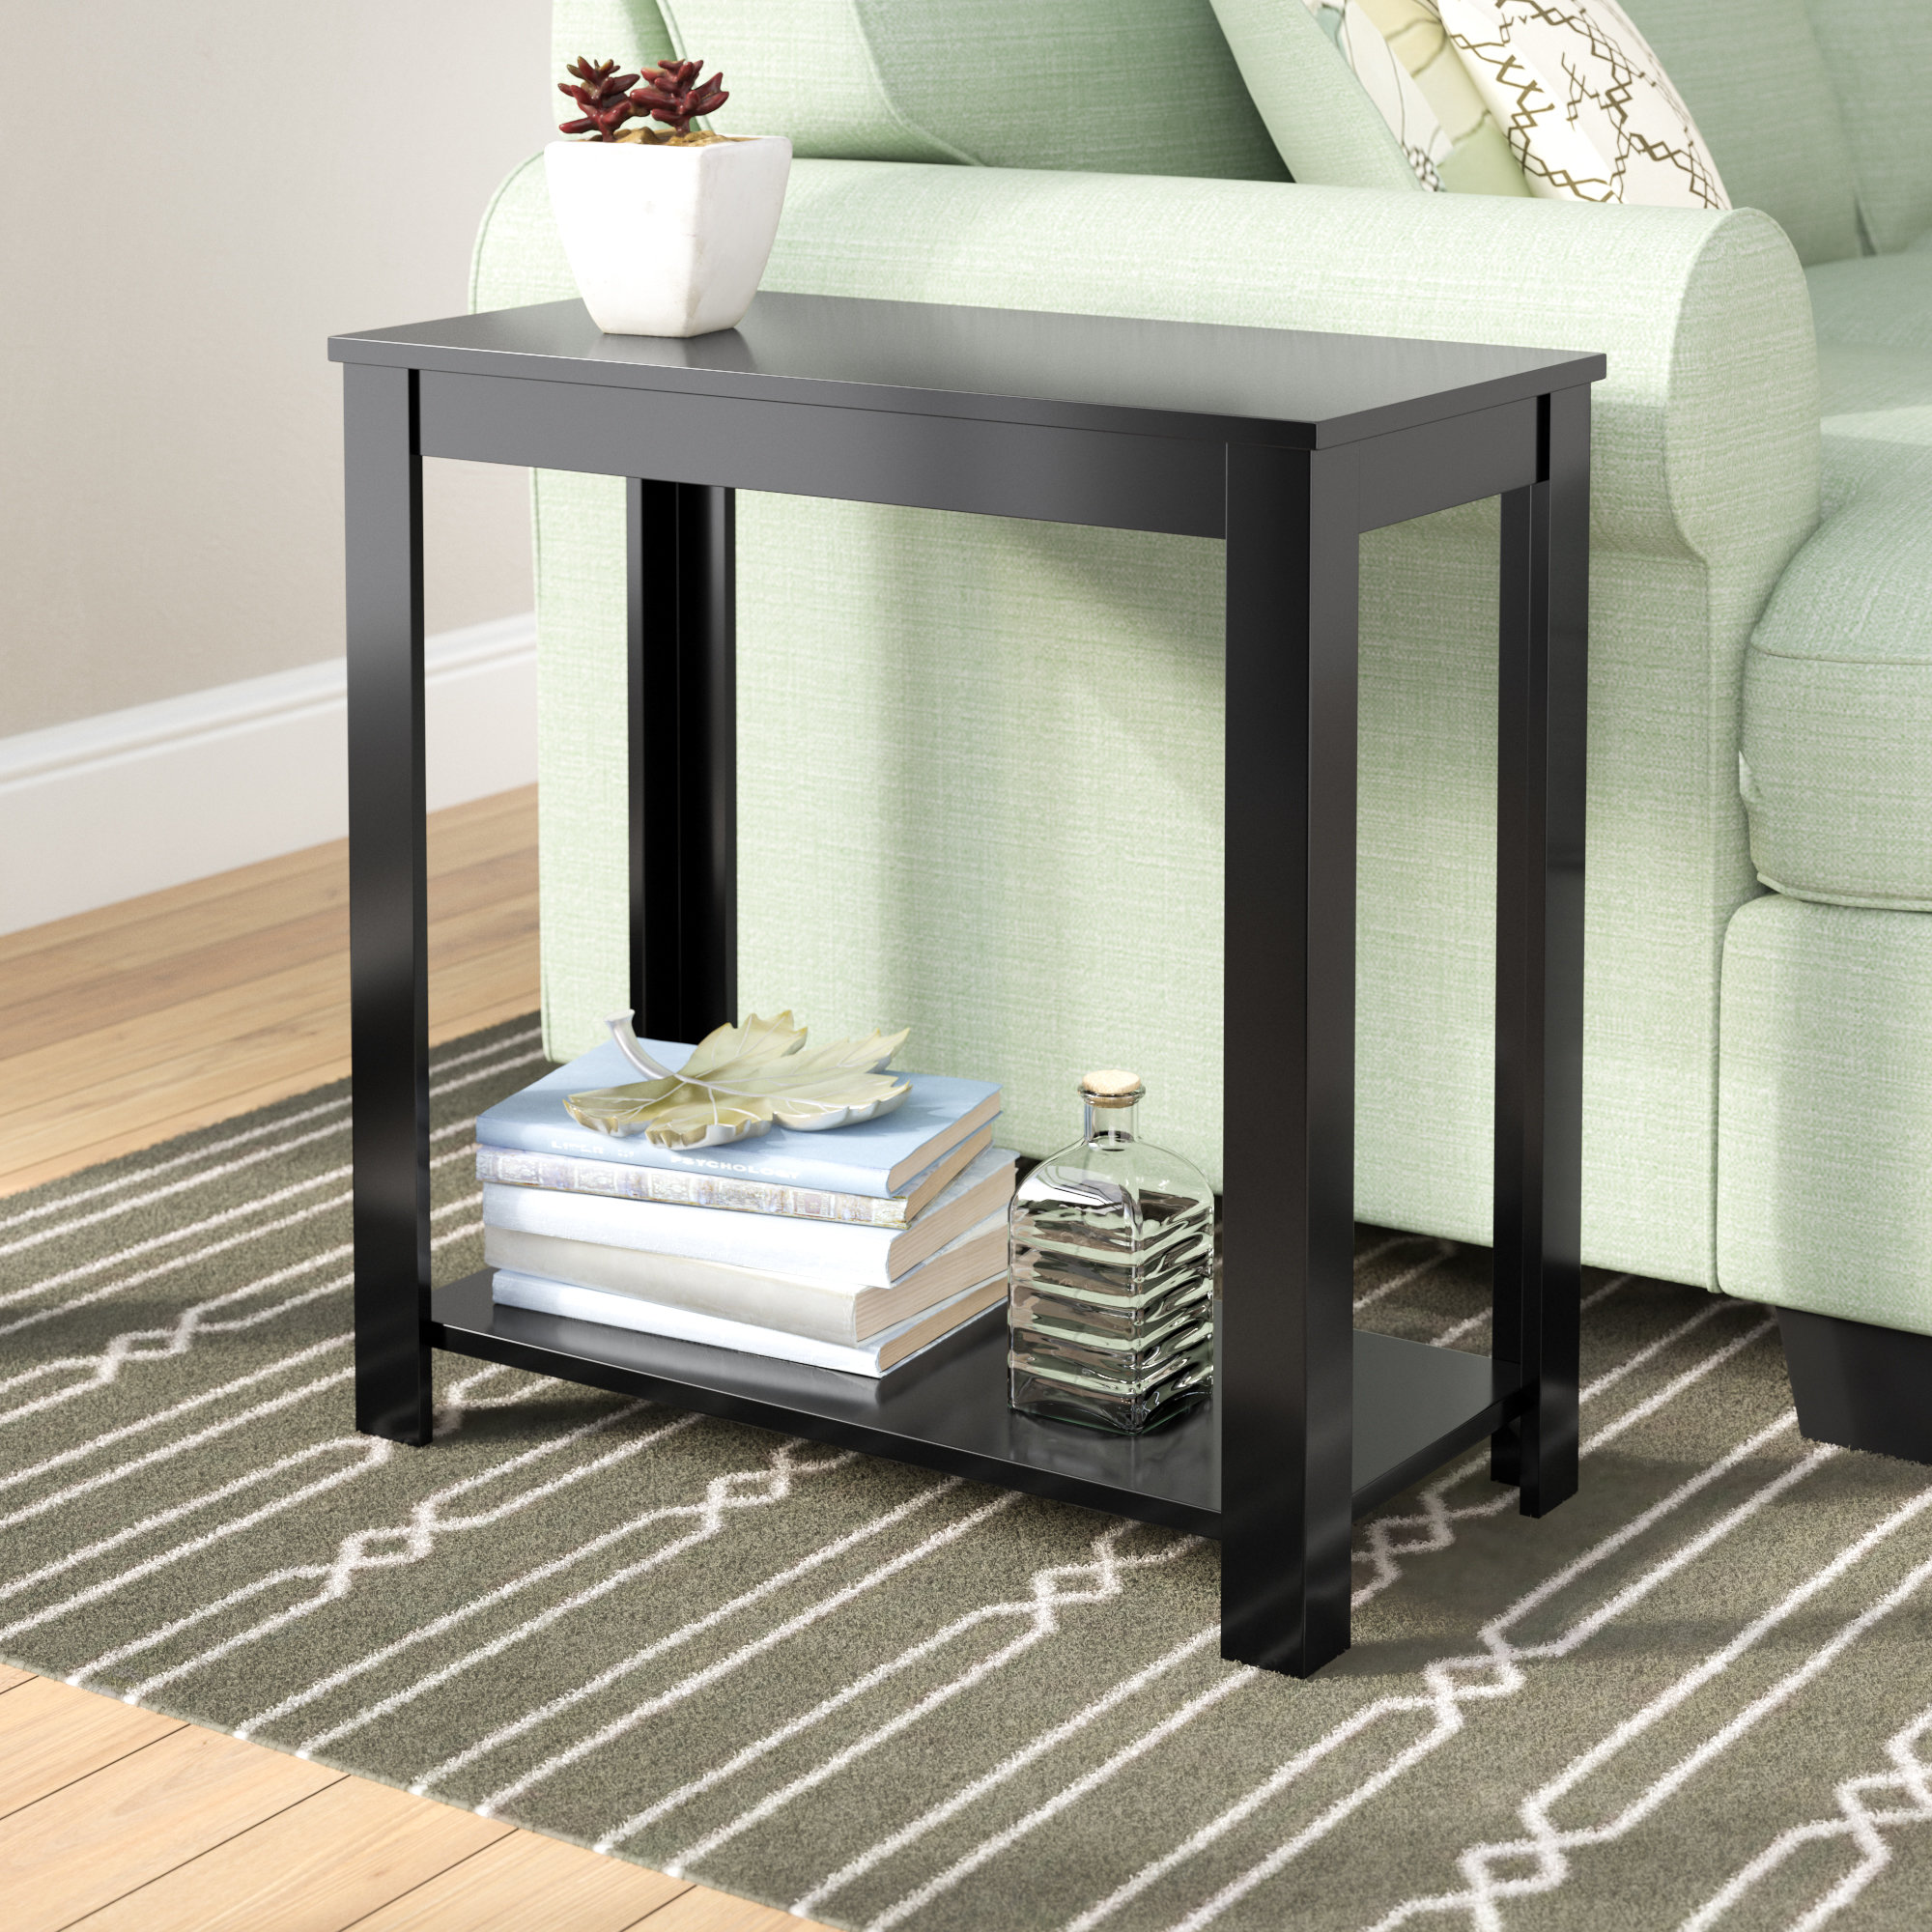 andover mills kier end table reviews room essentials stacking accent antique rectangular target clocks pier console small farmhouse glass coffee tables toronto navy blue lamp